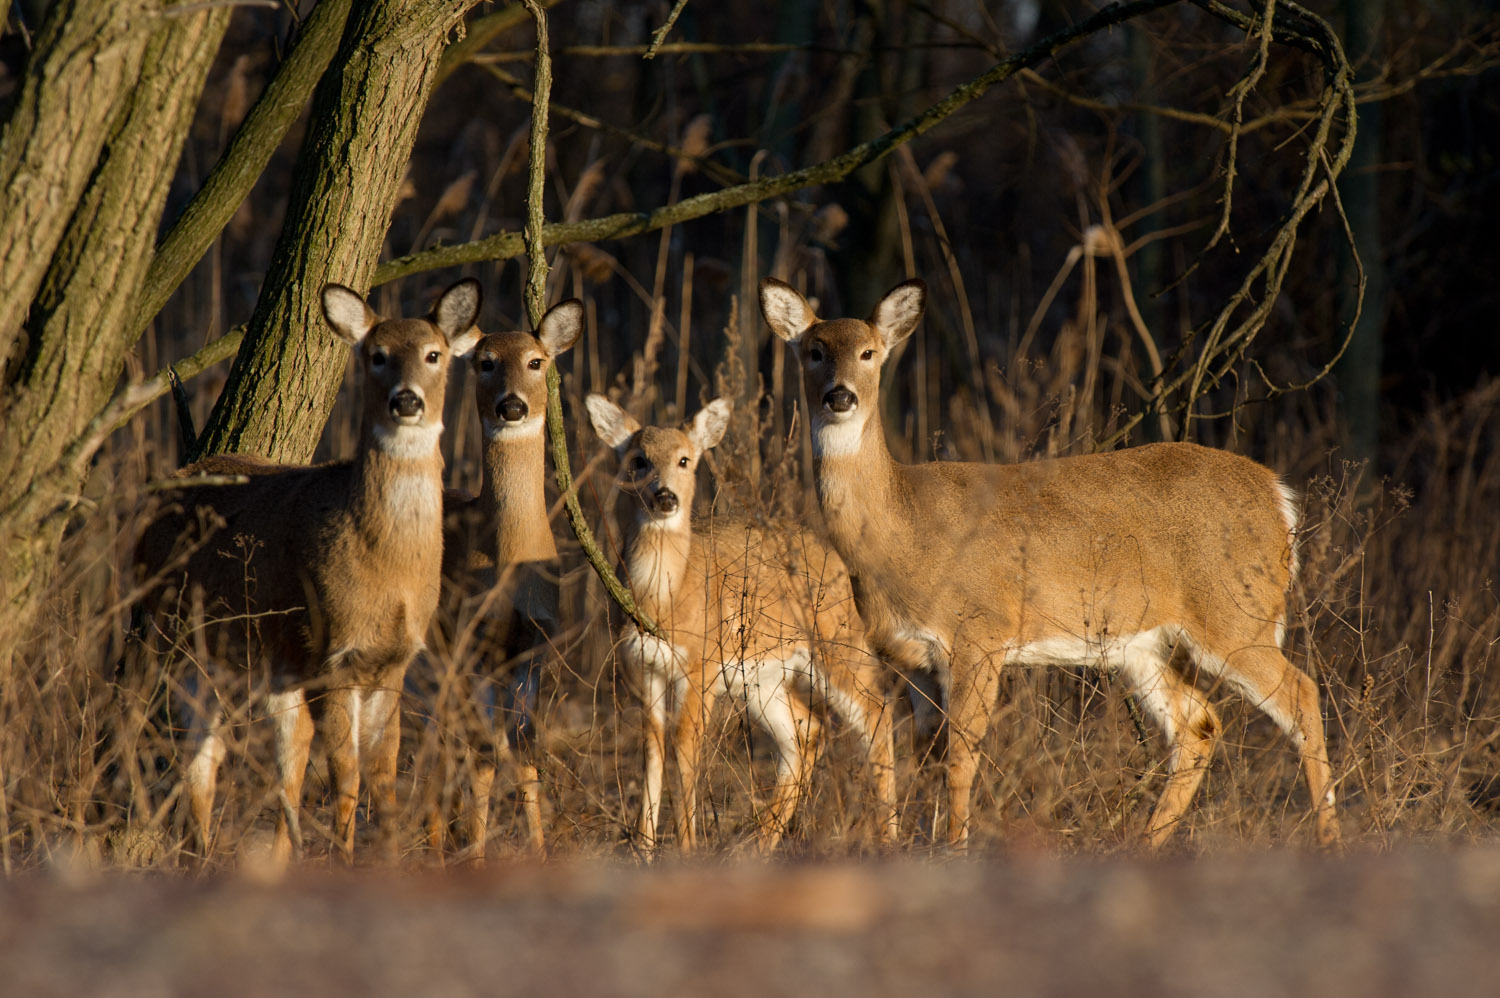 Afamily of deer look right at me as the sun begins to set at Palmyra Cove Nature Park.